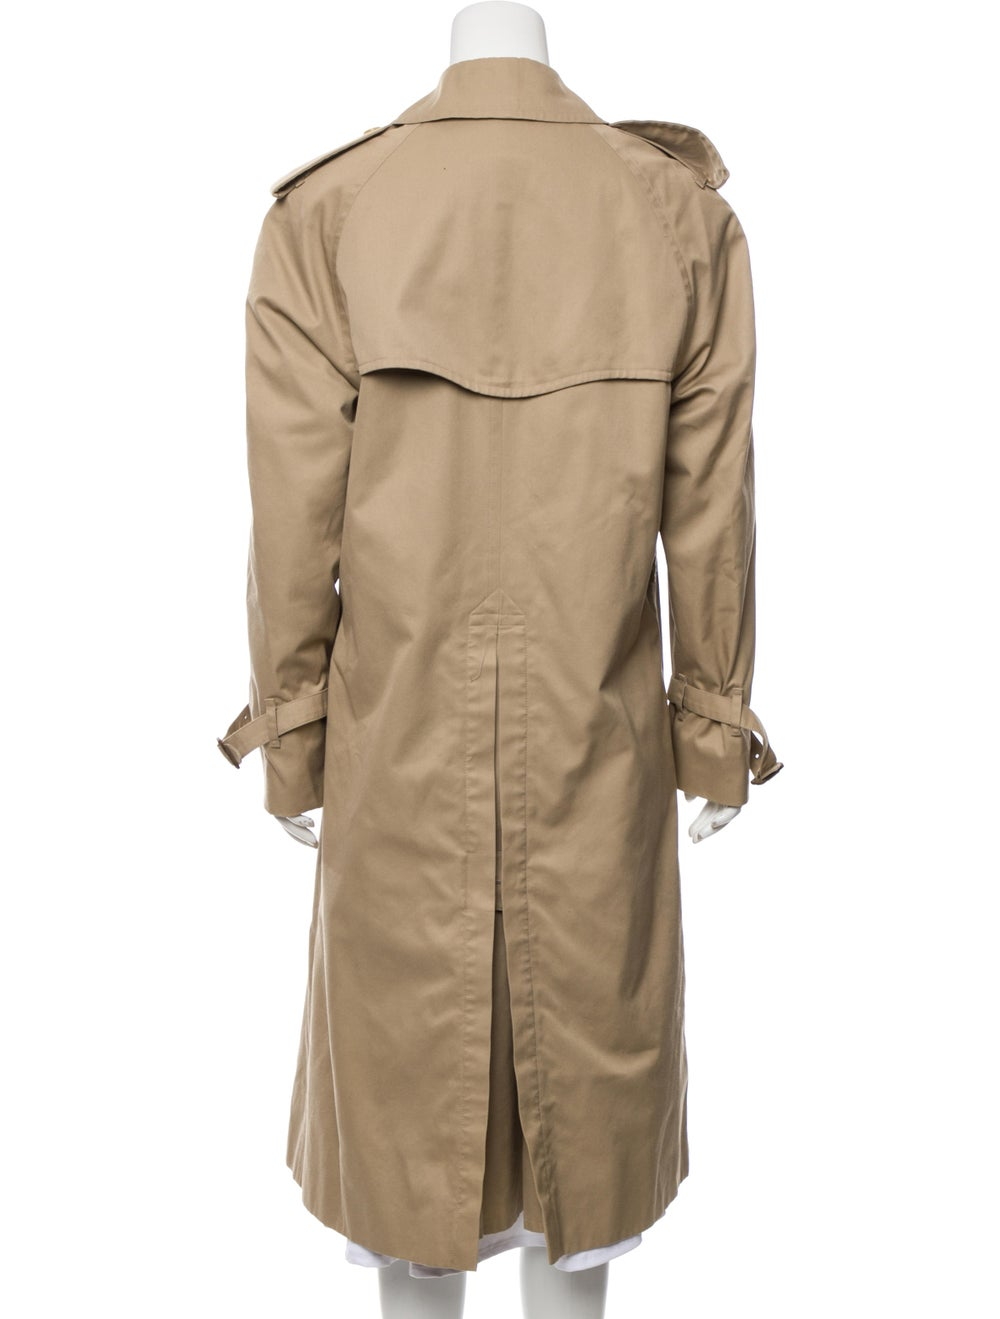 Burberry Double-Breasted Trench Coat Beige - image 3